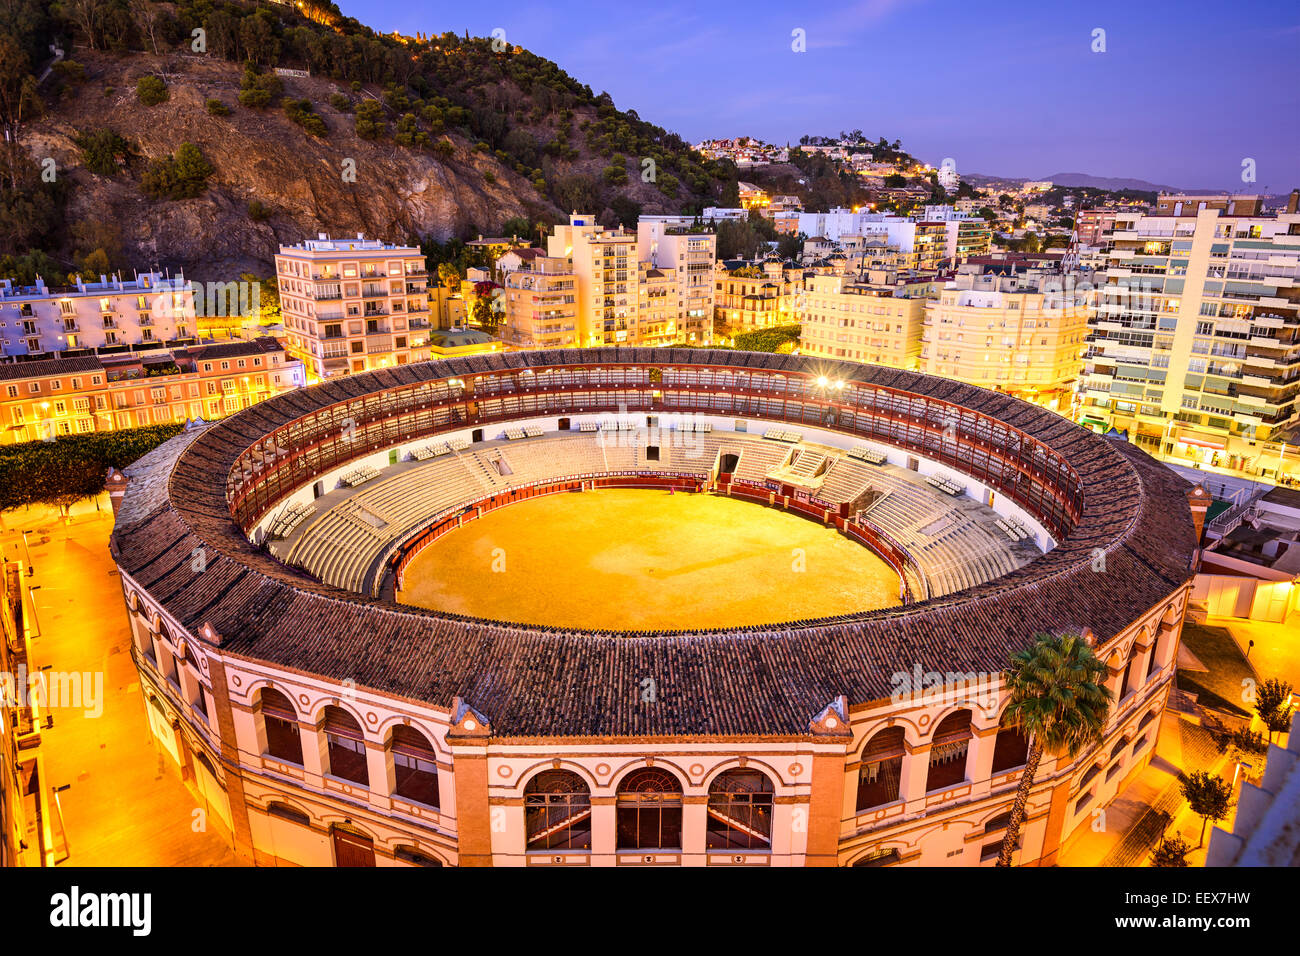 Malaga, Spain downtown skyline over the bullring. - Stock Image